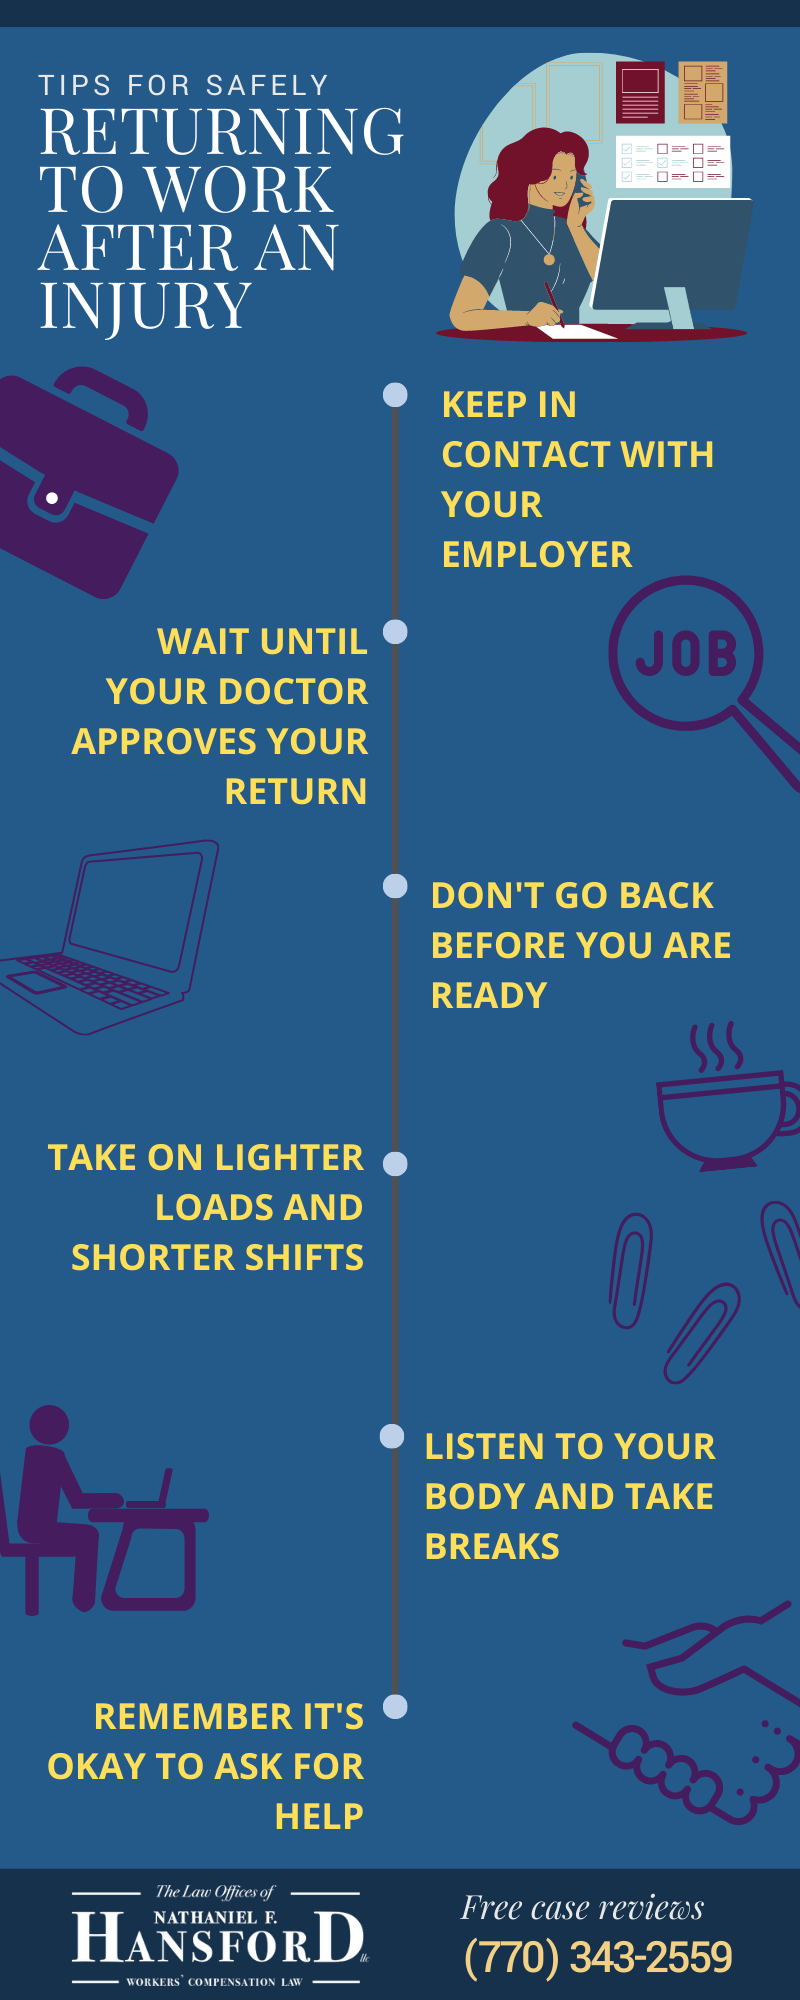 tips for safely returning to work after an injury infographic